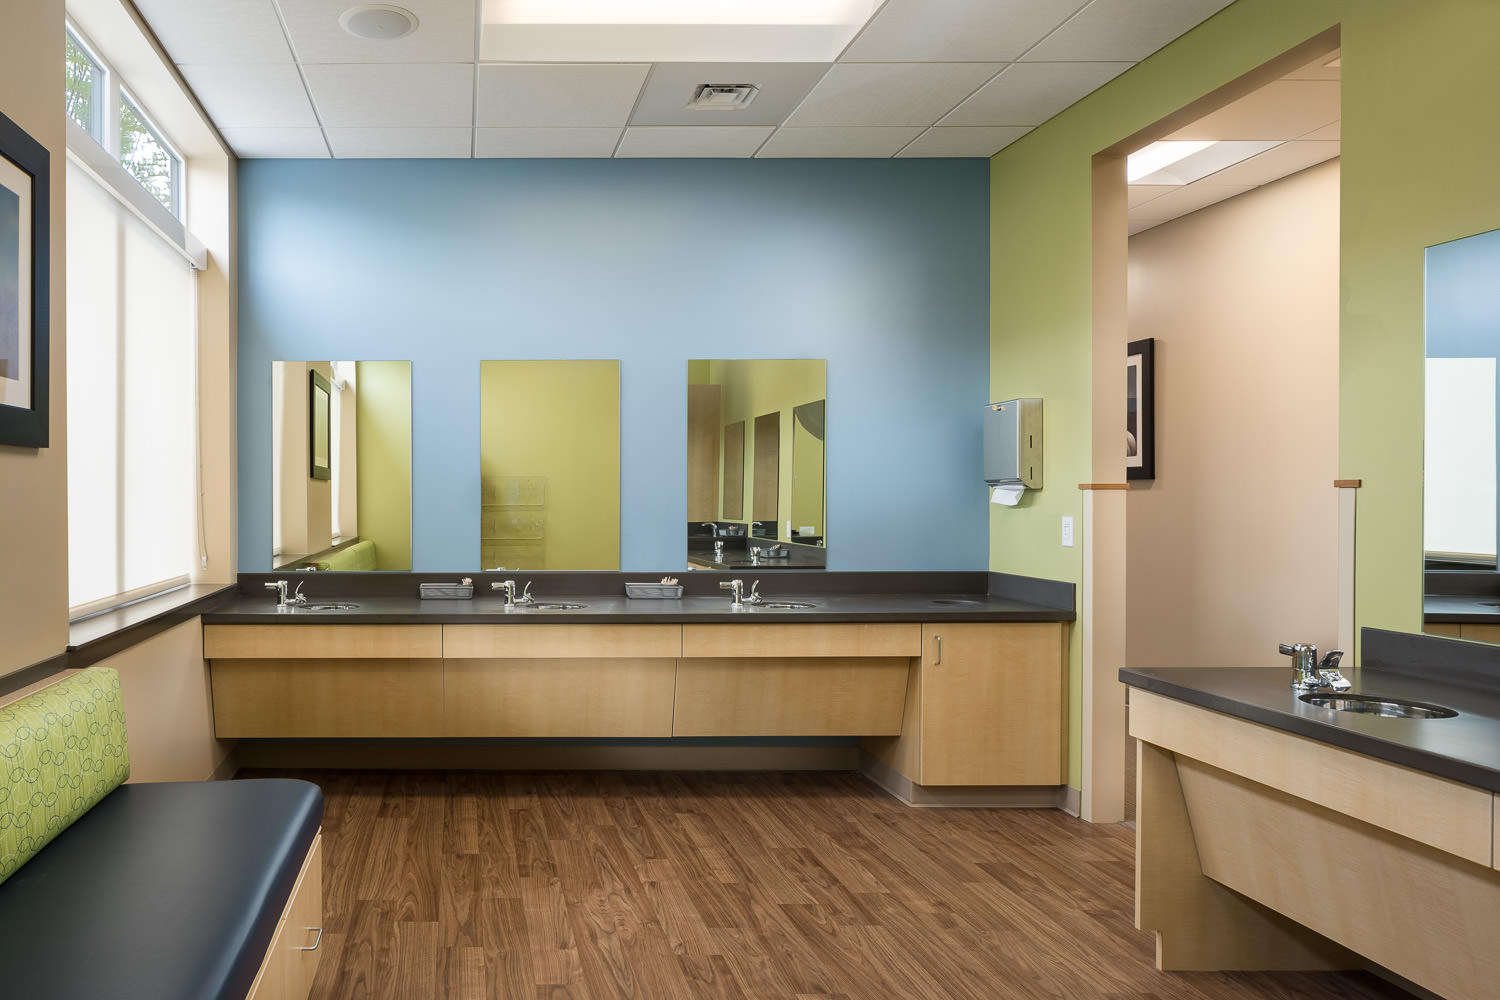 Dental office architecture photo of the kids brushing room in the new Timberlane Dental Office in Essex Vermont with interior design by BSD Interior Design and construction by Neagley & Chase photographed by Studio SB.